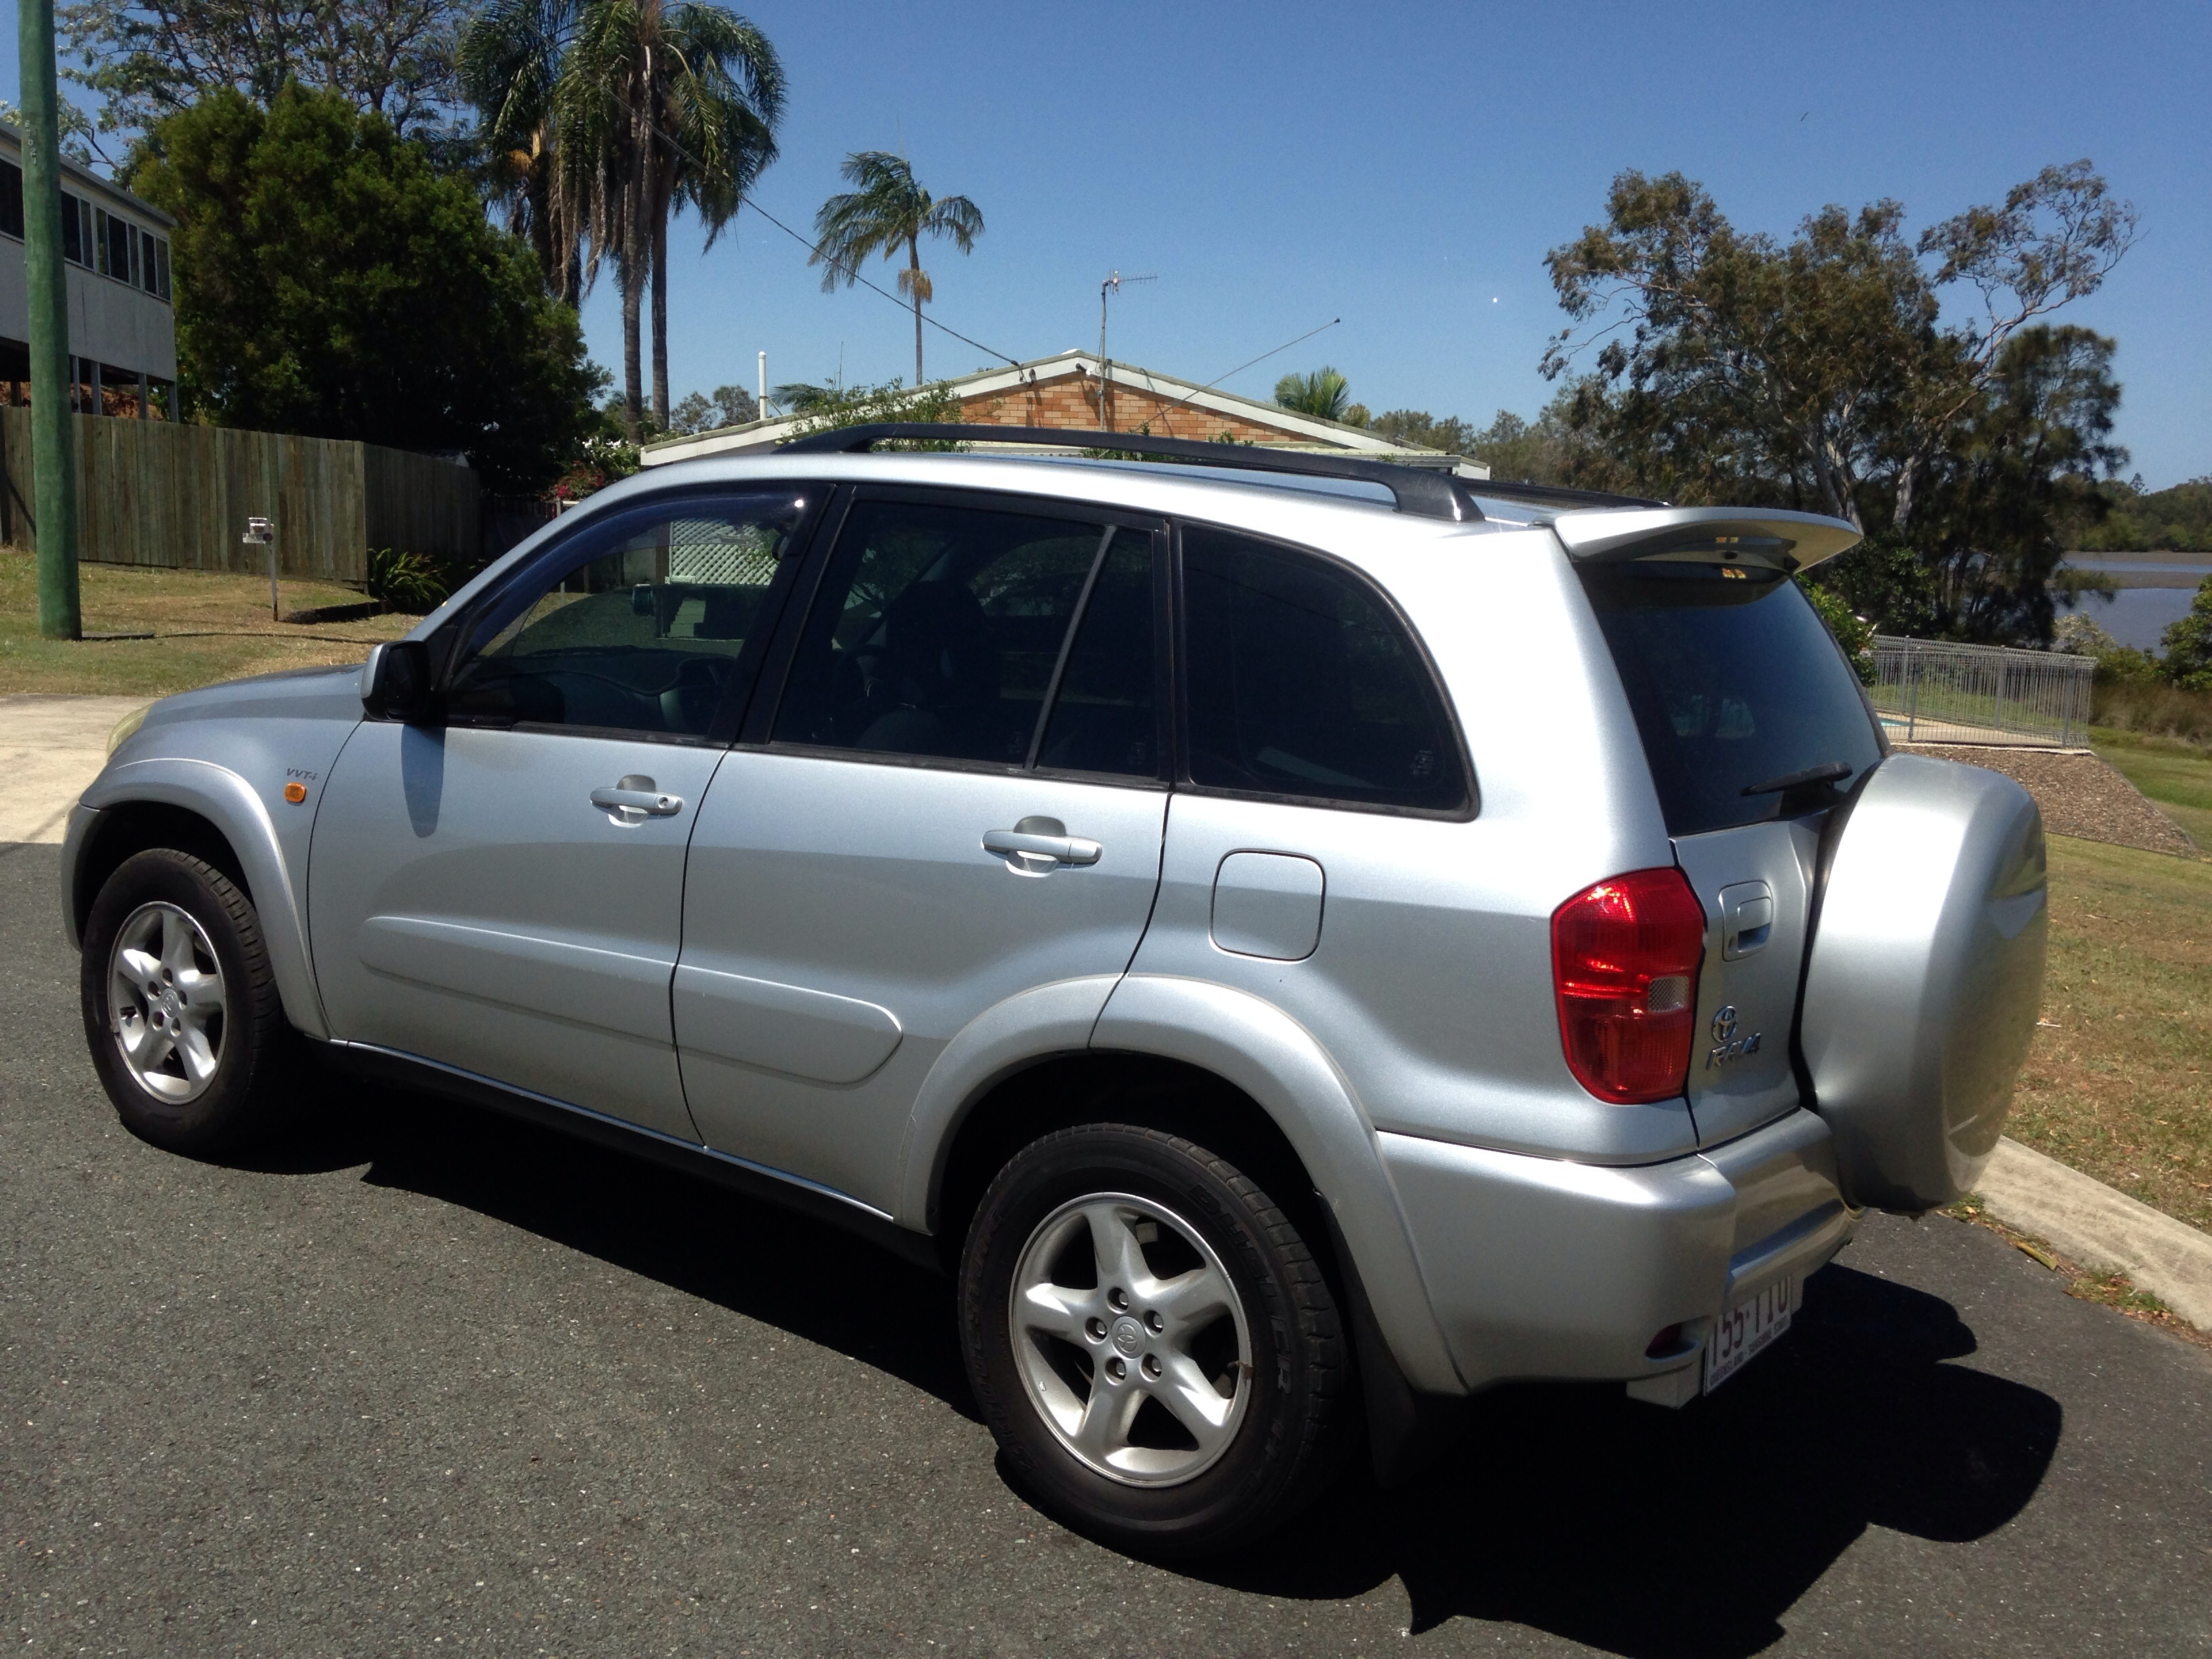 2003 toyota rav4 cruiser 4x4 aca23r car sales qld. Black Bedroom Furniture Sets. Home Design Ideas